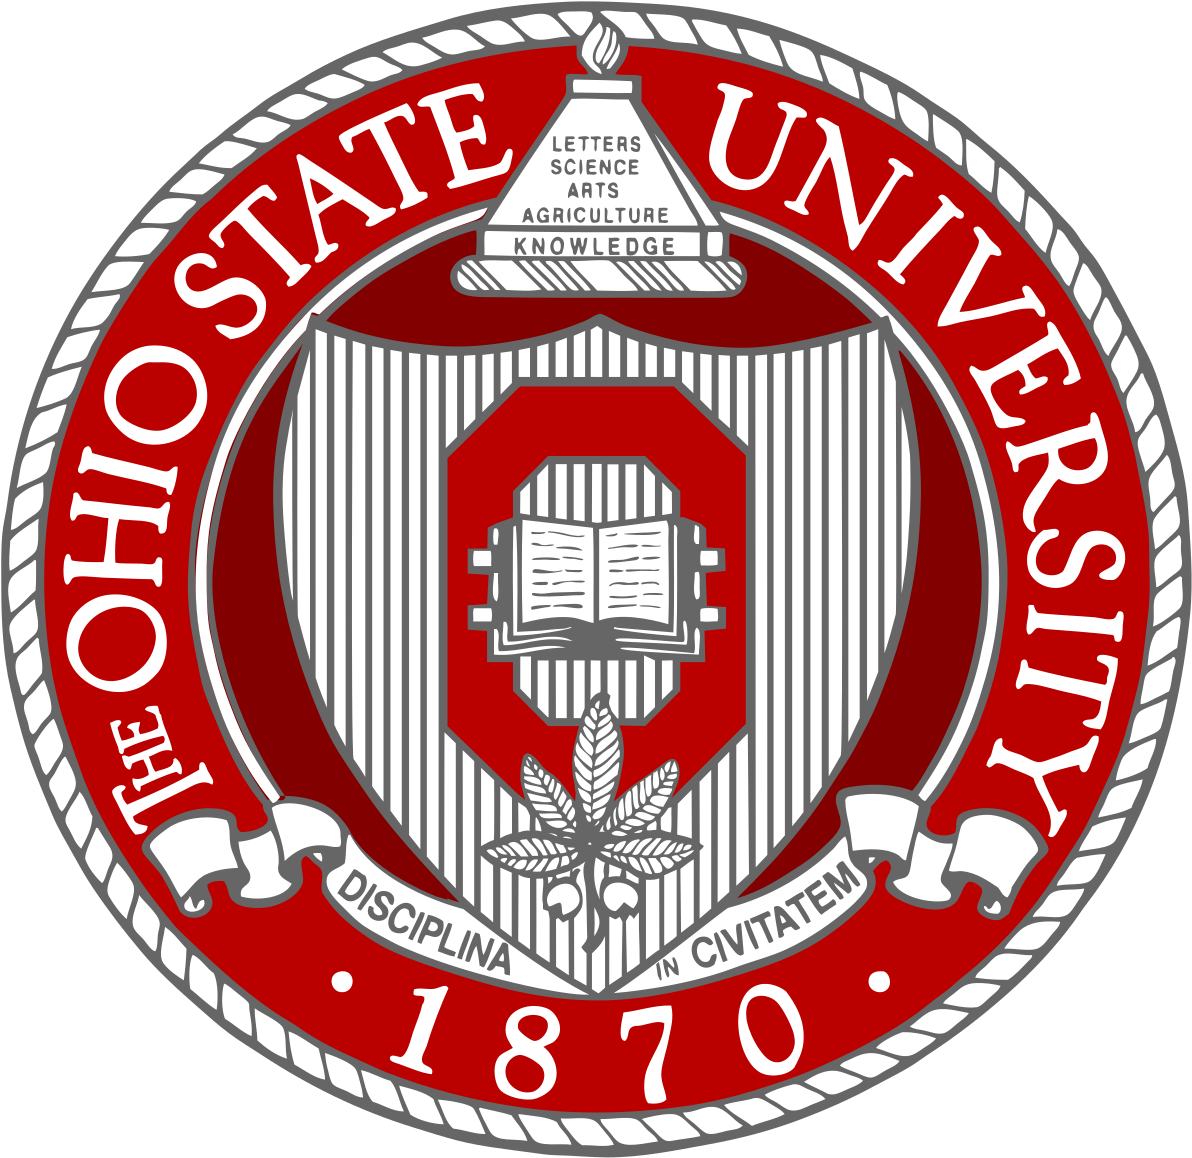 Ohio State University Seal Clipart (800x800), Png Download